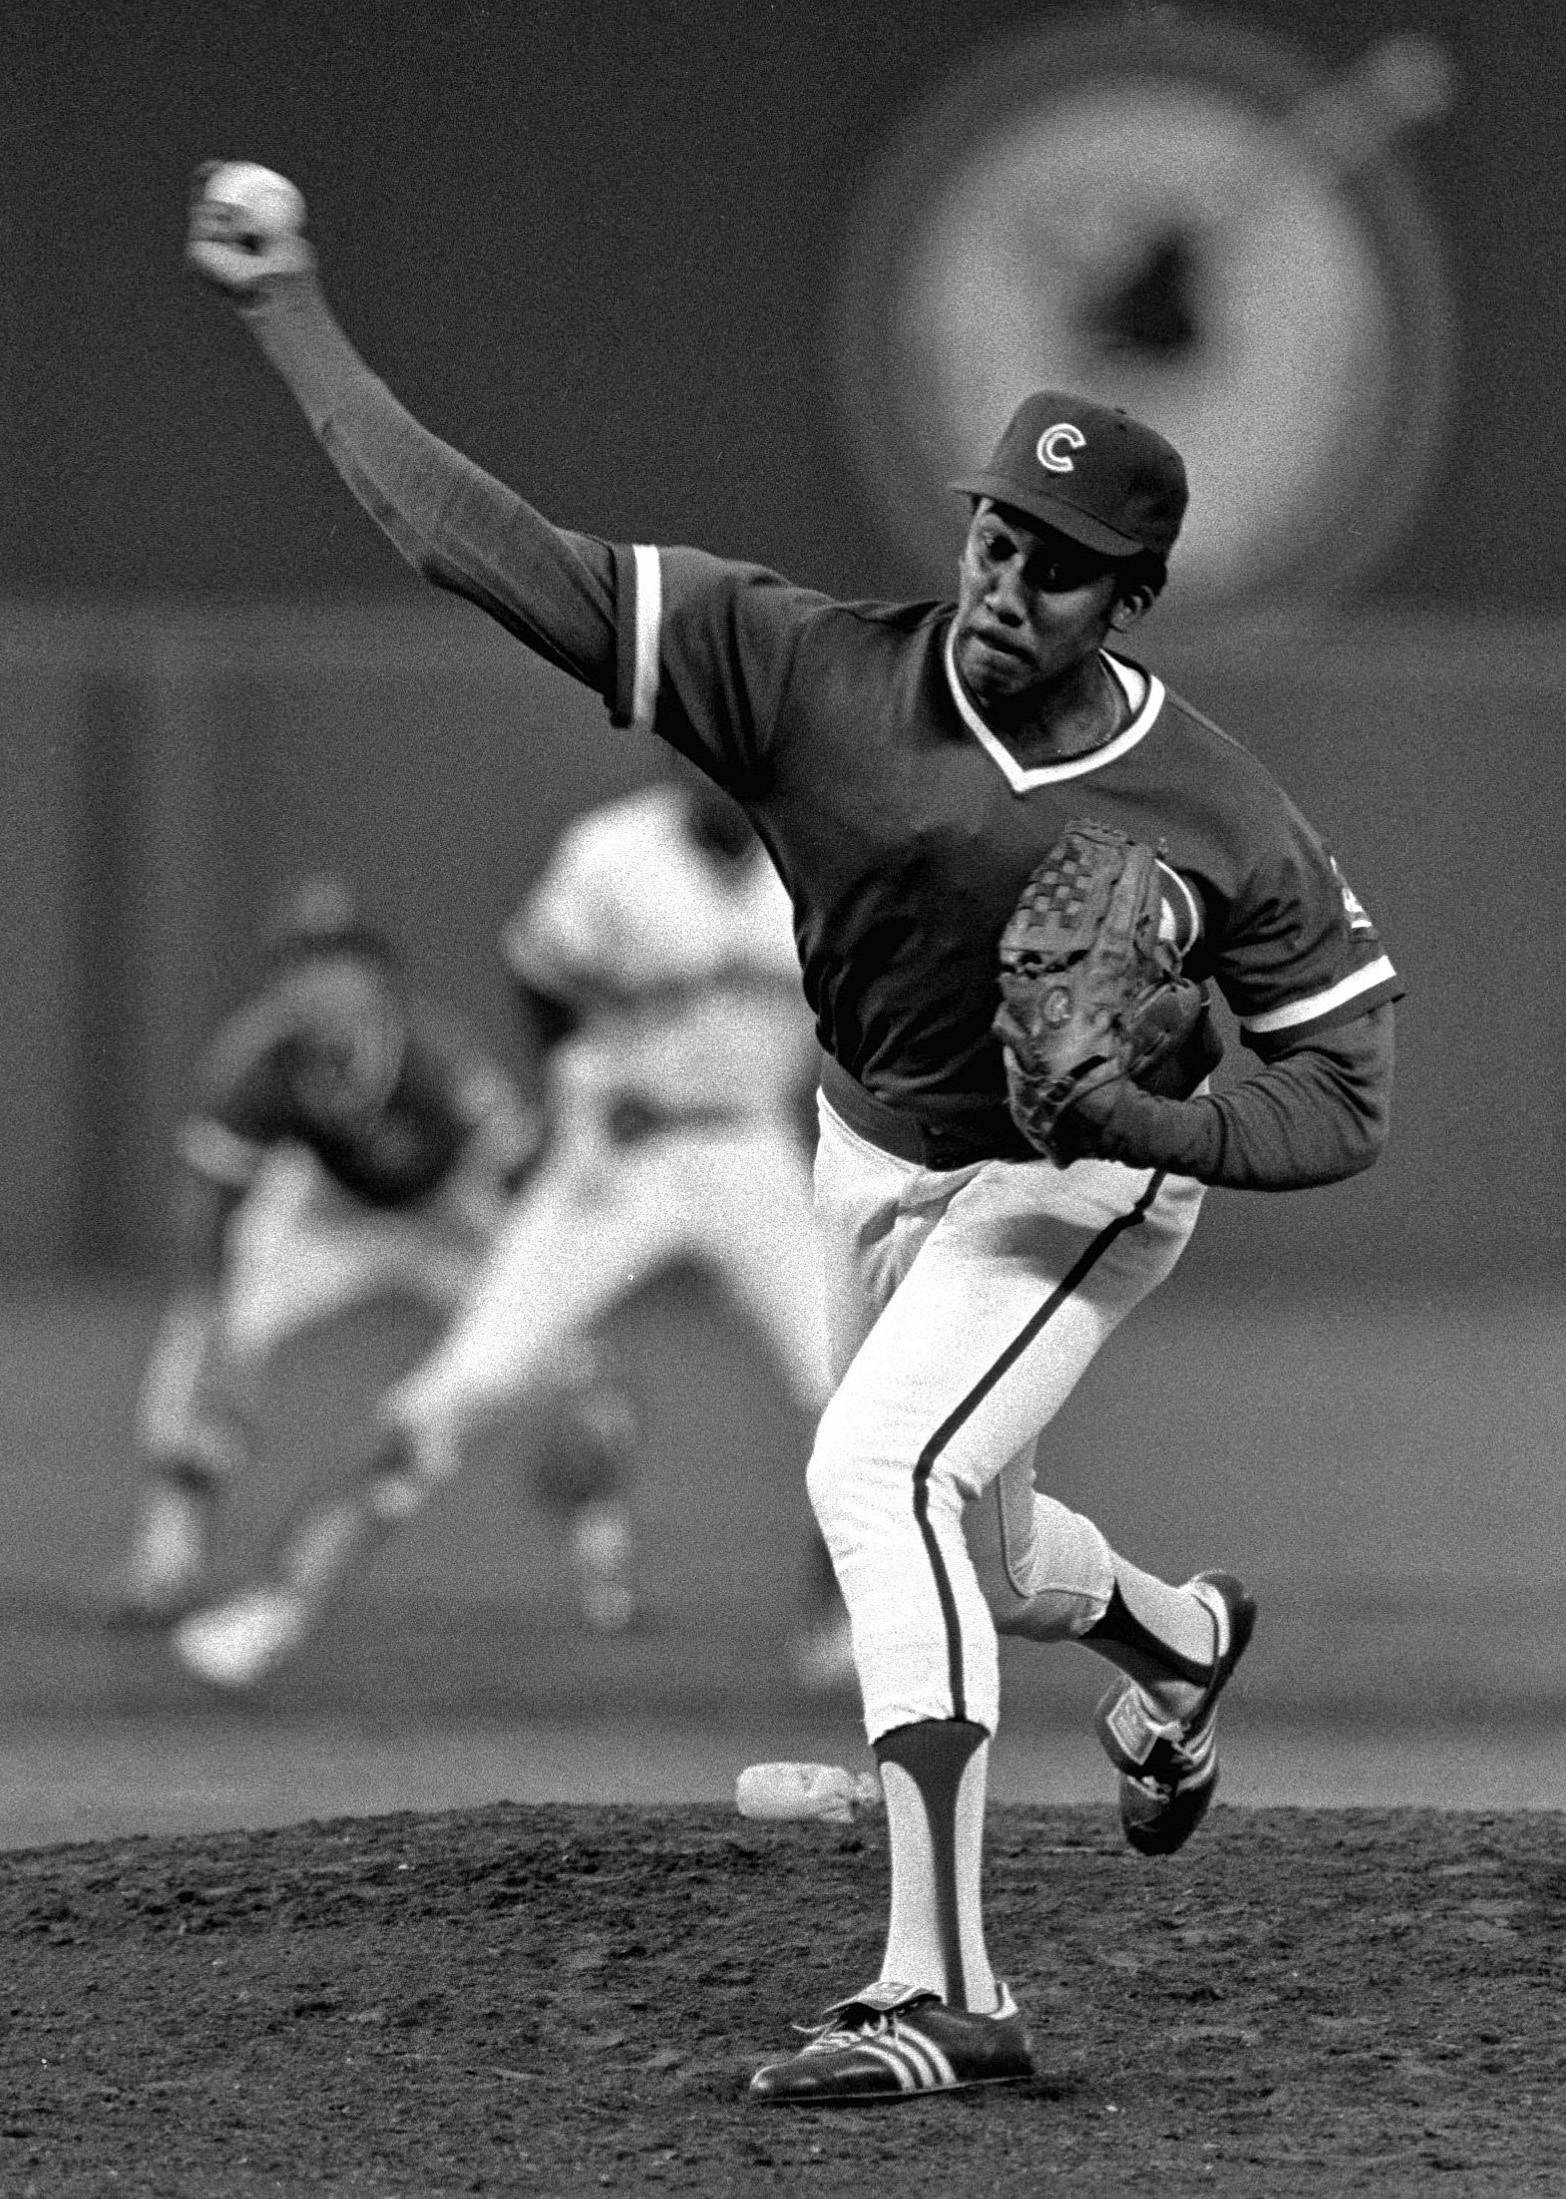 The easy delivery and pinpoint control of Chicago Cubs pitcher Fergie Jenkins earned him six straight years with 20 wins or more. Jenkins says he honed that control as a boy trying to throw lumps of coal through the open doors of moving train boxcars.